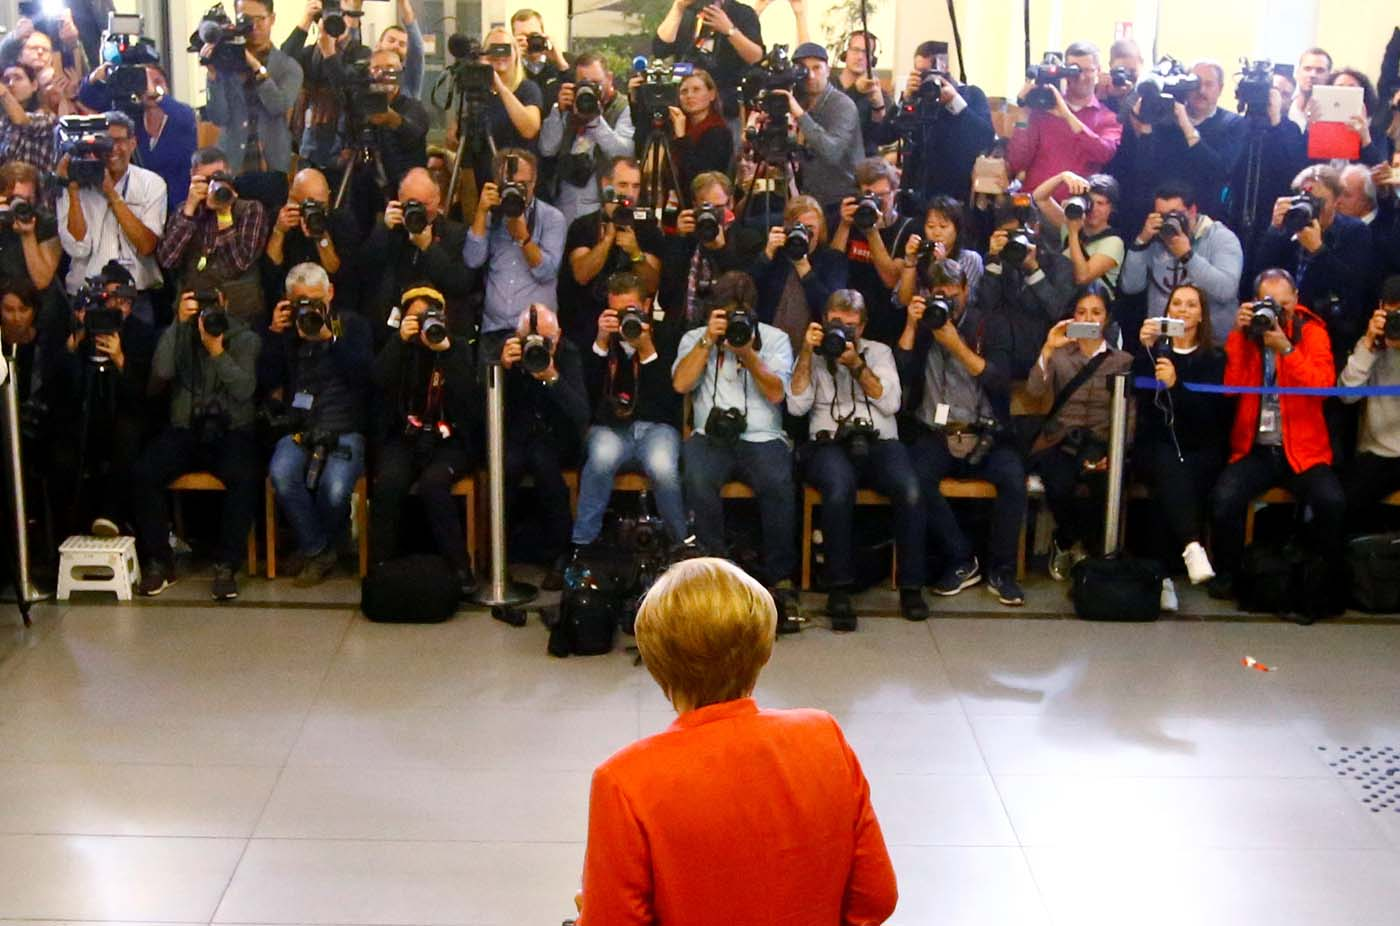 German Chancellor and leader of the Christian Democratic Union CDU Angela Merkel votes in the general election (Bundestagswahl) in Berlin, Germany, September 24, 2017. REUTERS/Fabrizio Bensch